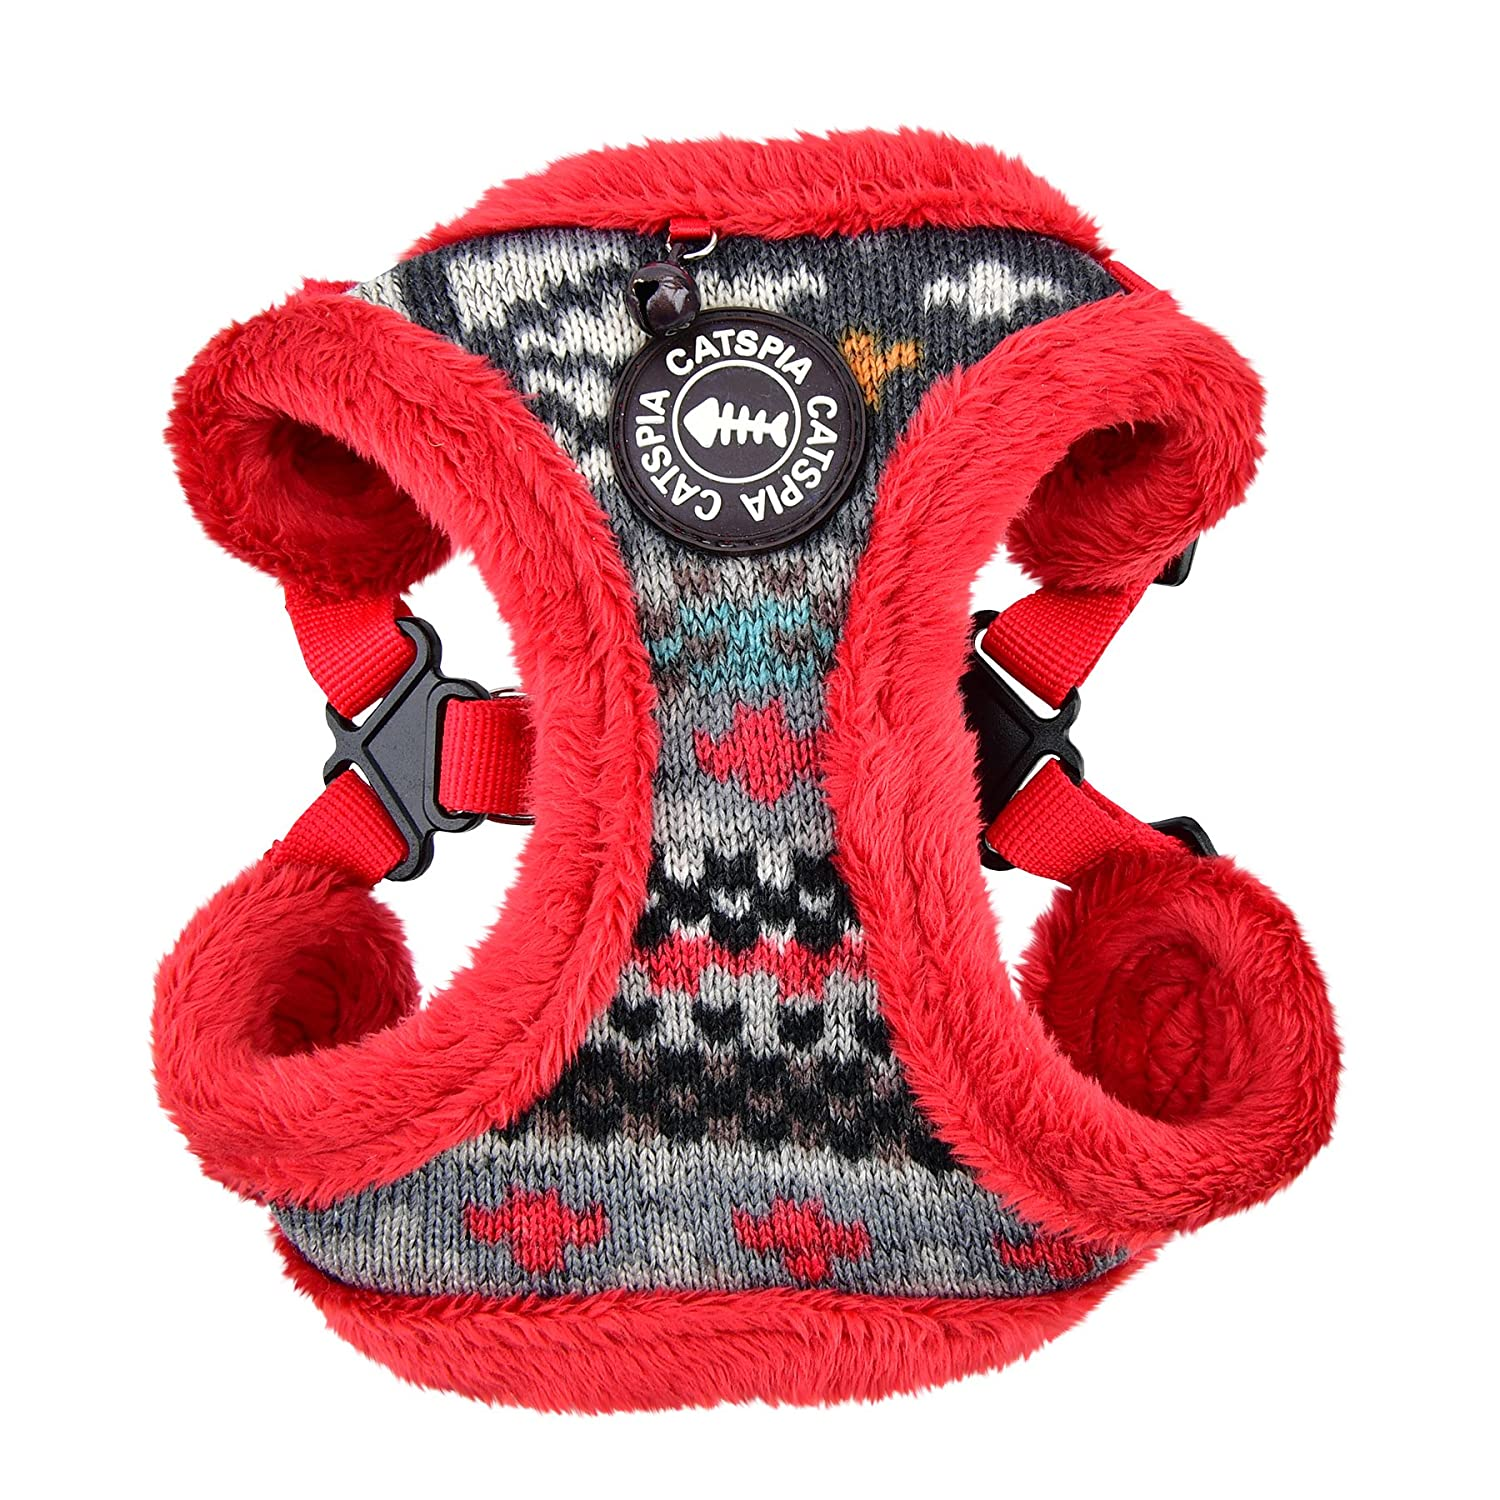 CATSPIA Penelope Harness C RED L